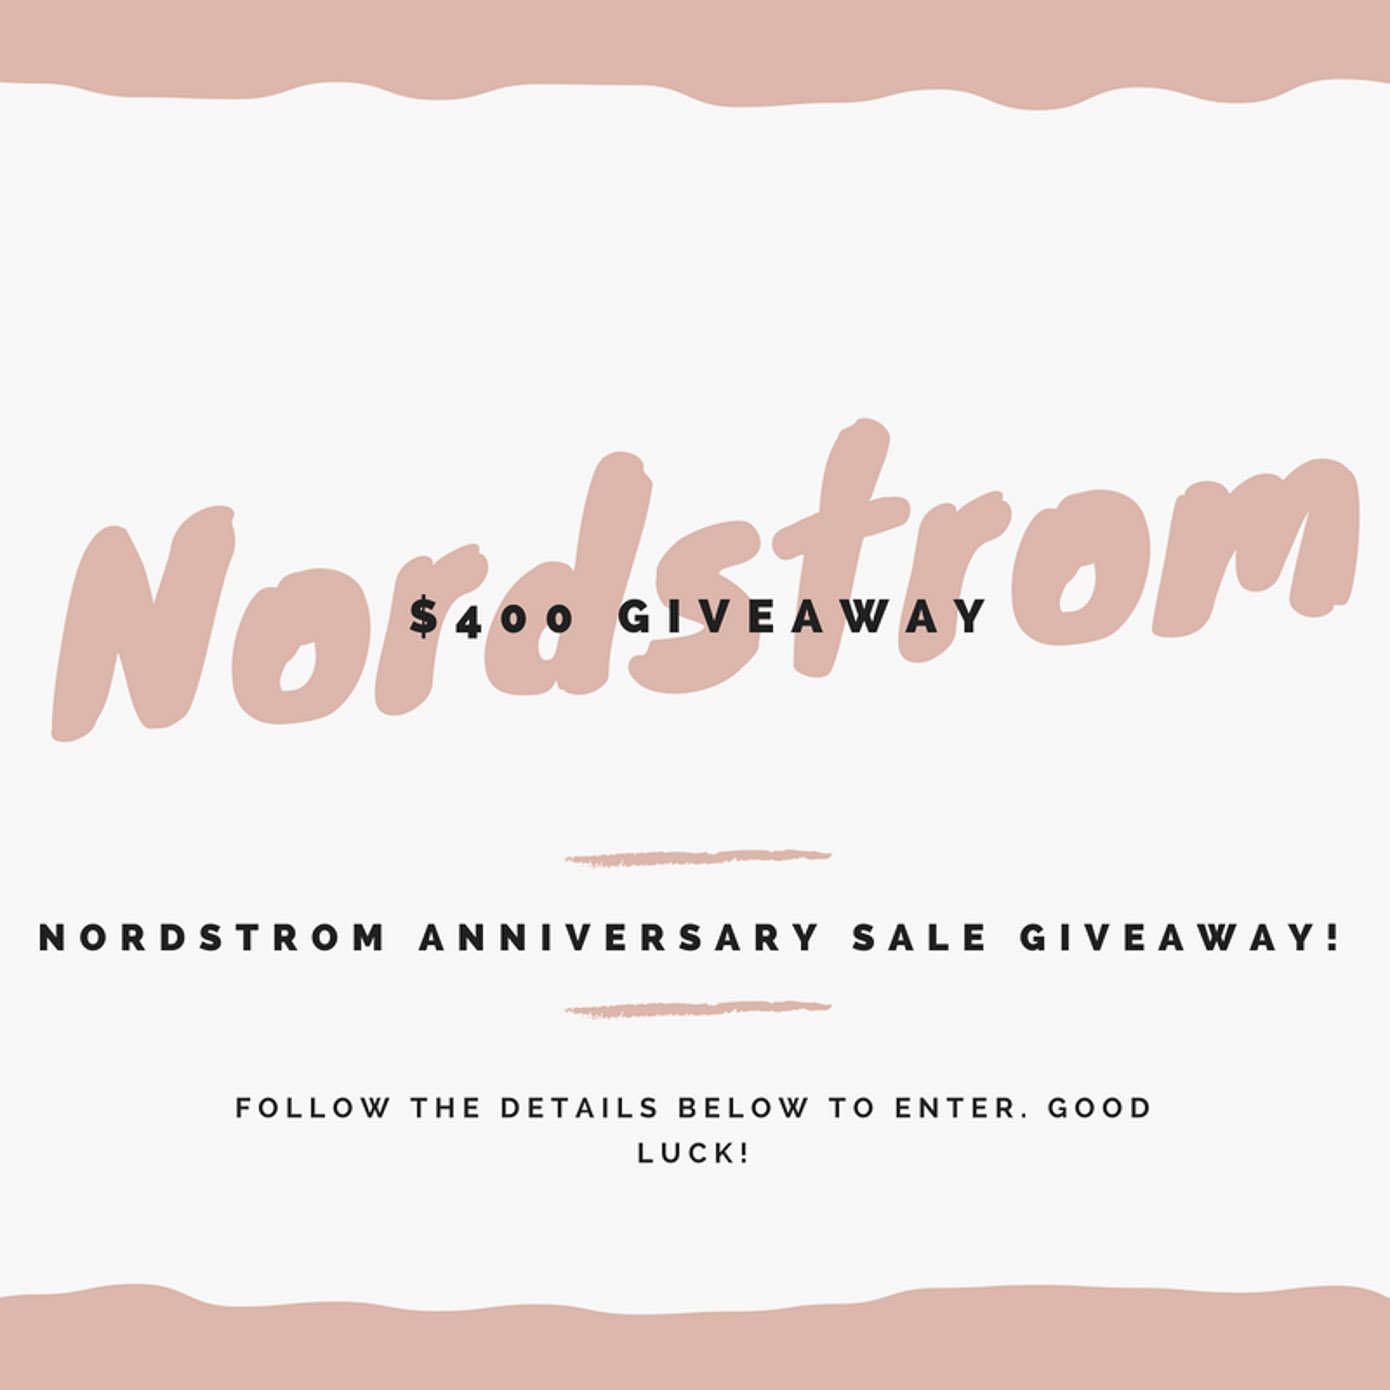 Nordstrom Anniversary Sale $400 Giveaway